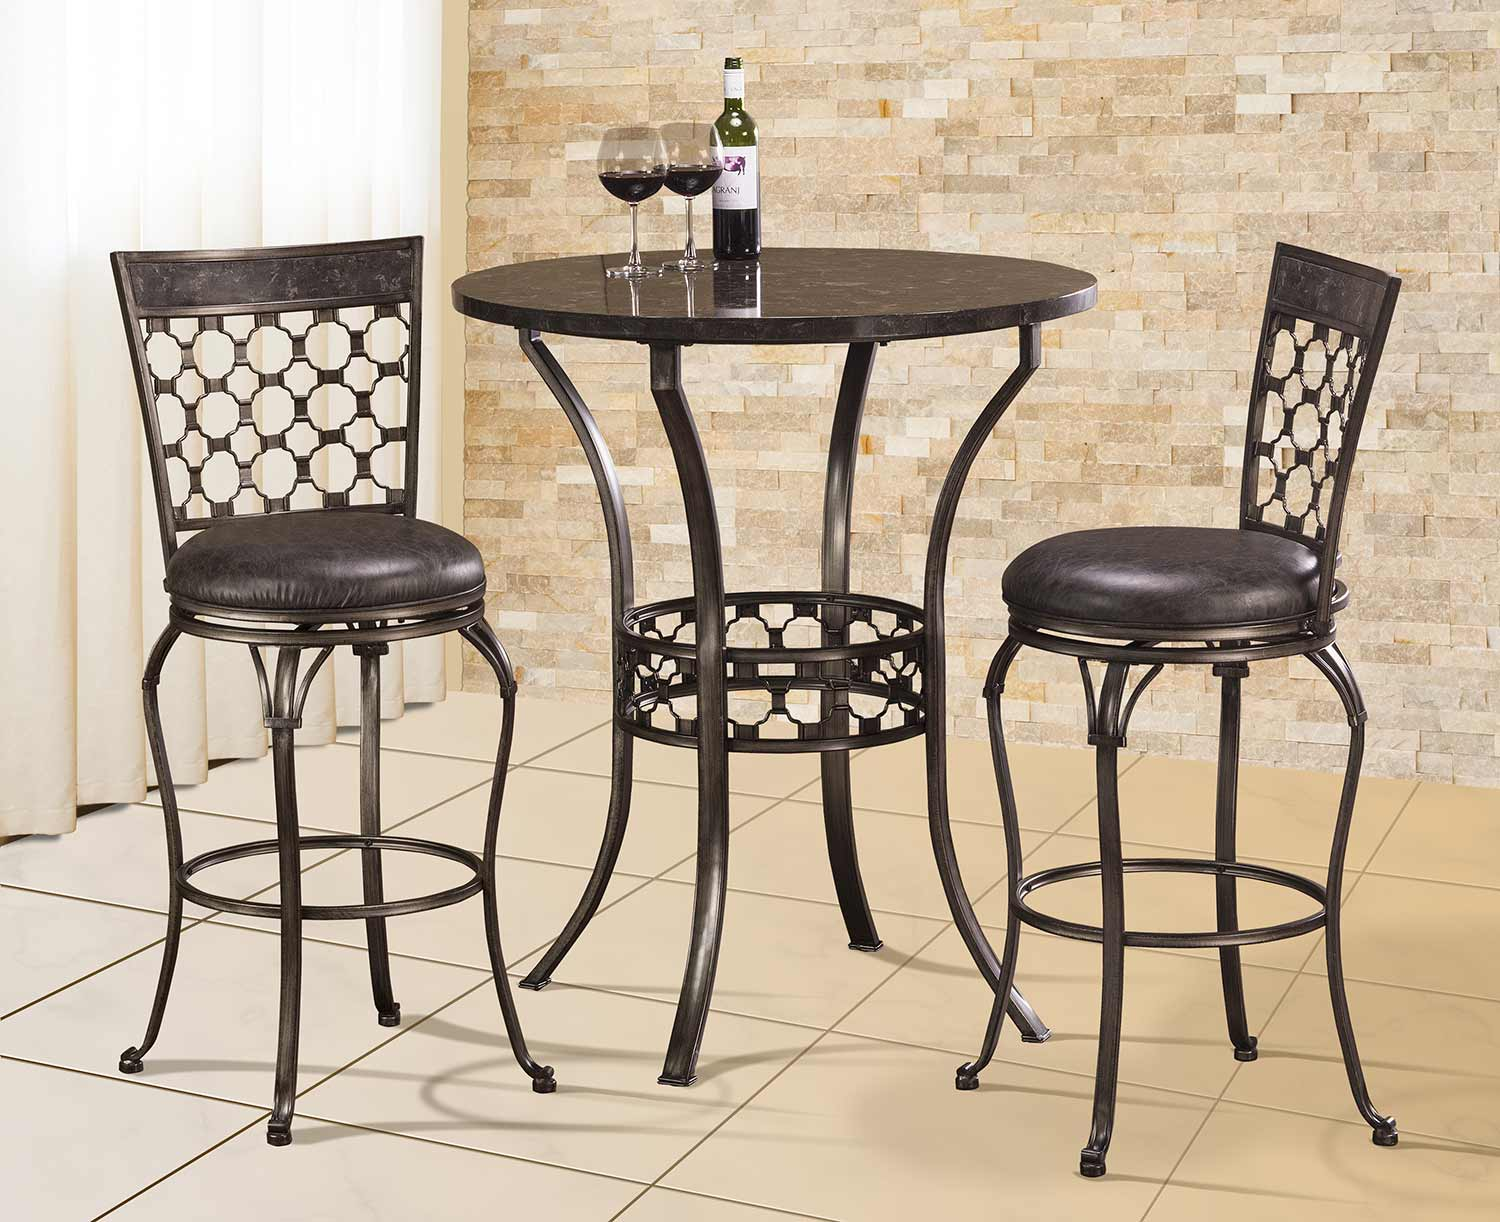 Hillsdale Brescello 3 Piece Bar Height Bistro Dining Set   Antique  Pewter/Blue Stone